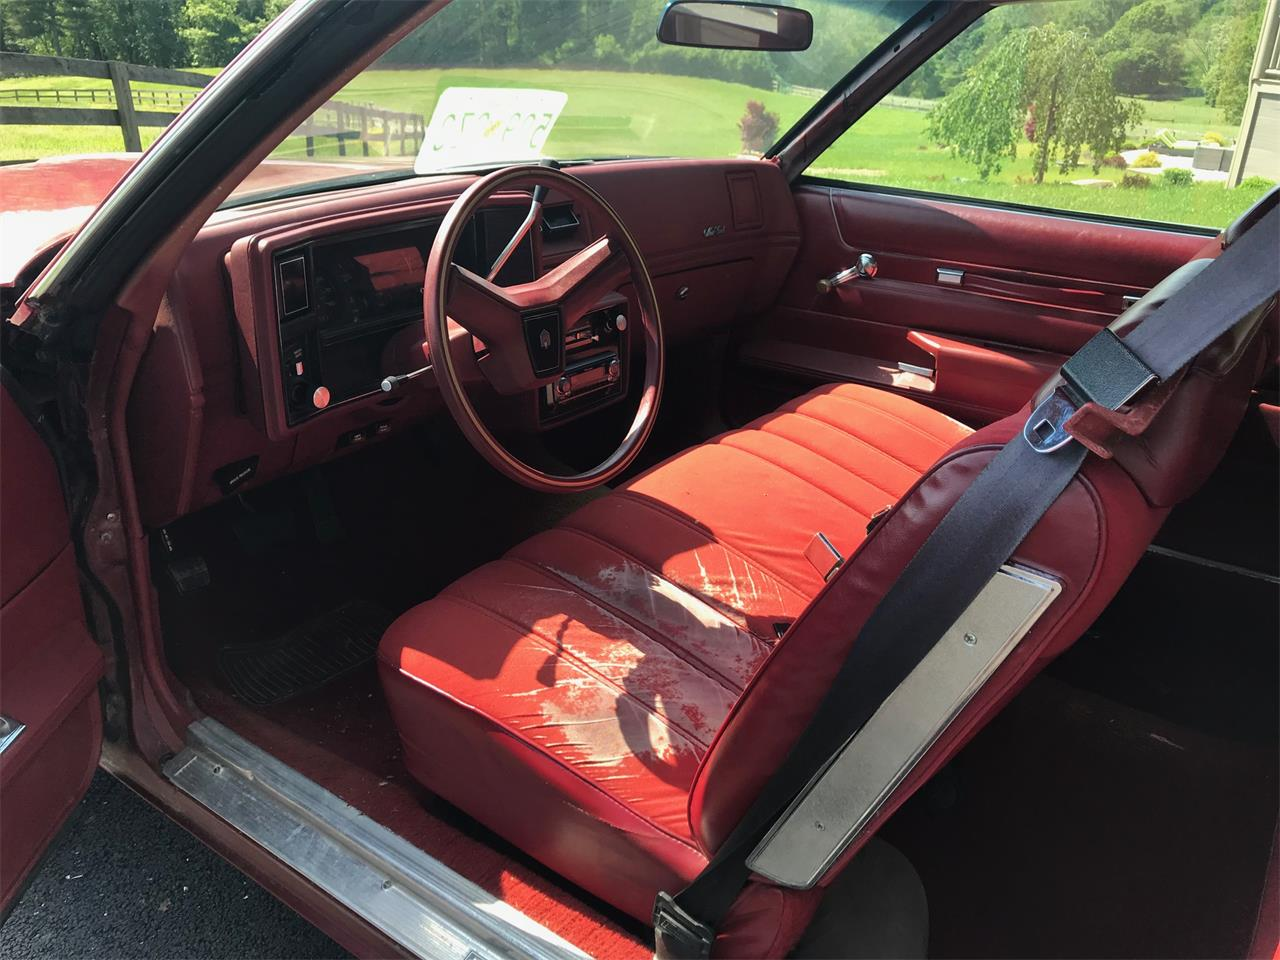 For Sale: 1979 Chevrolet Monte Carlo in Monkton, Maryland